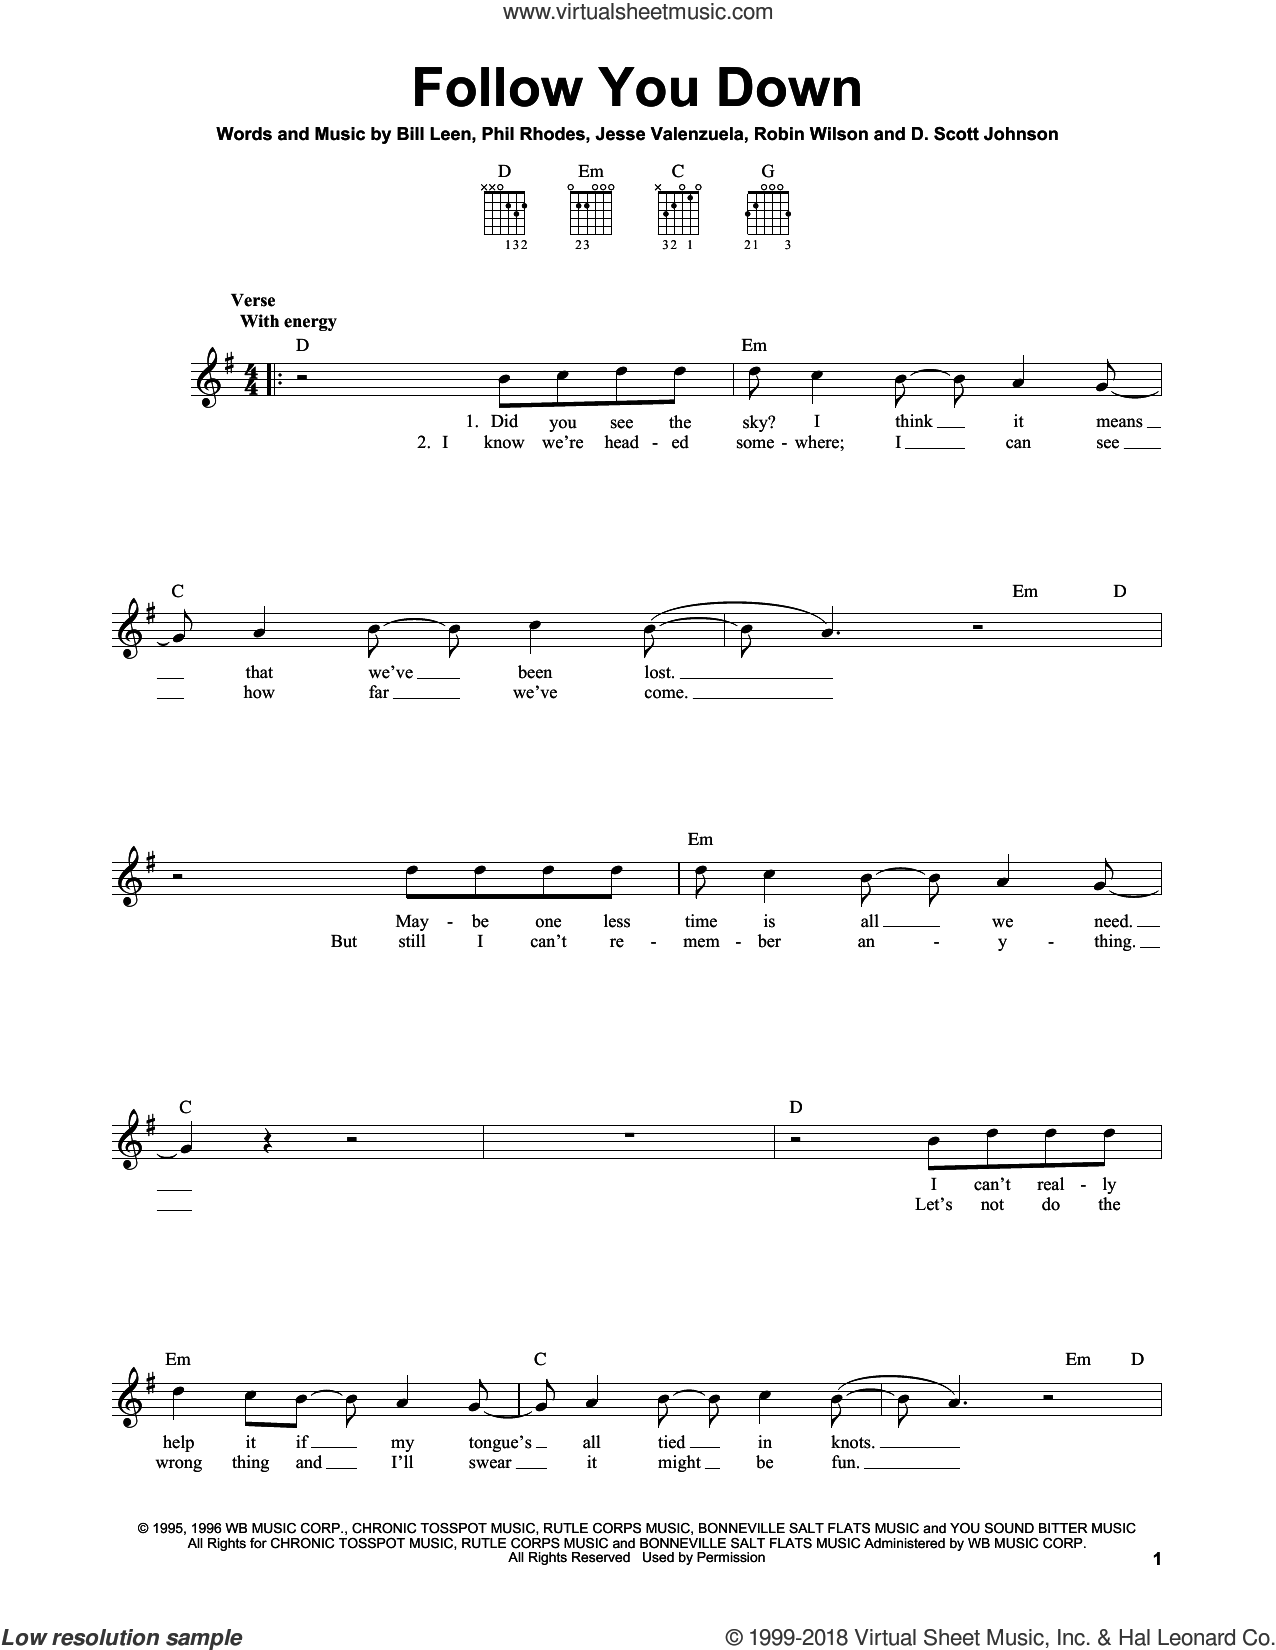 Follow You Down sheet music for guitar solo (chords) by Gin Blossoms, Bill Leen, D. Scott Johnson, Jesse Valenzuela, Phil Rhodes and Robin Wilson, easy guitar (chords)